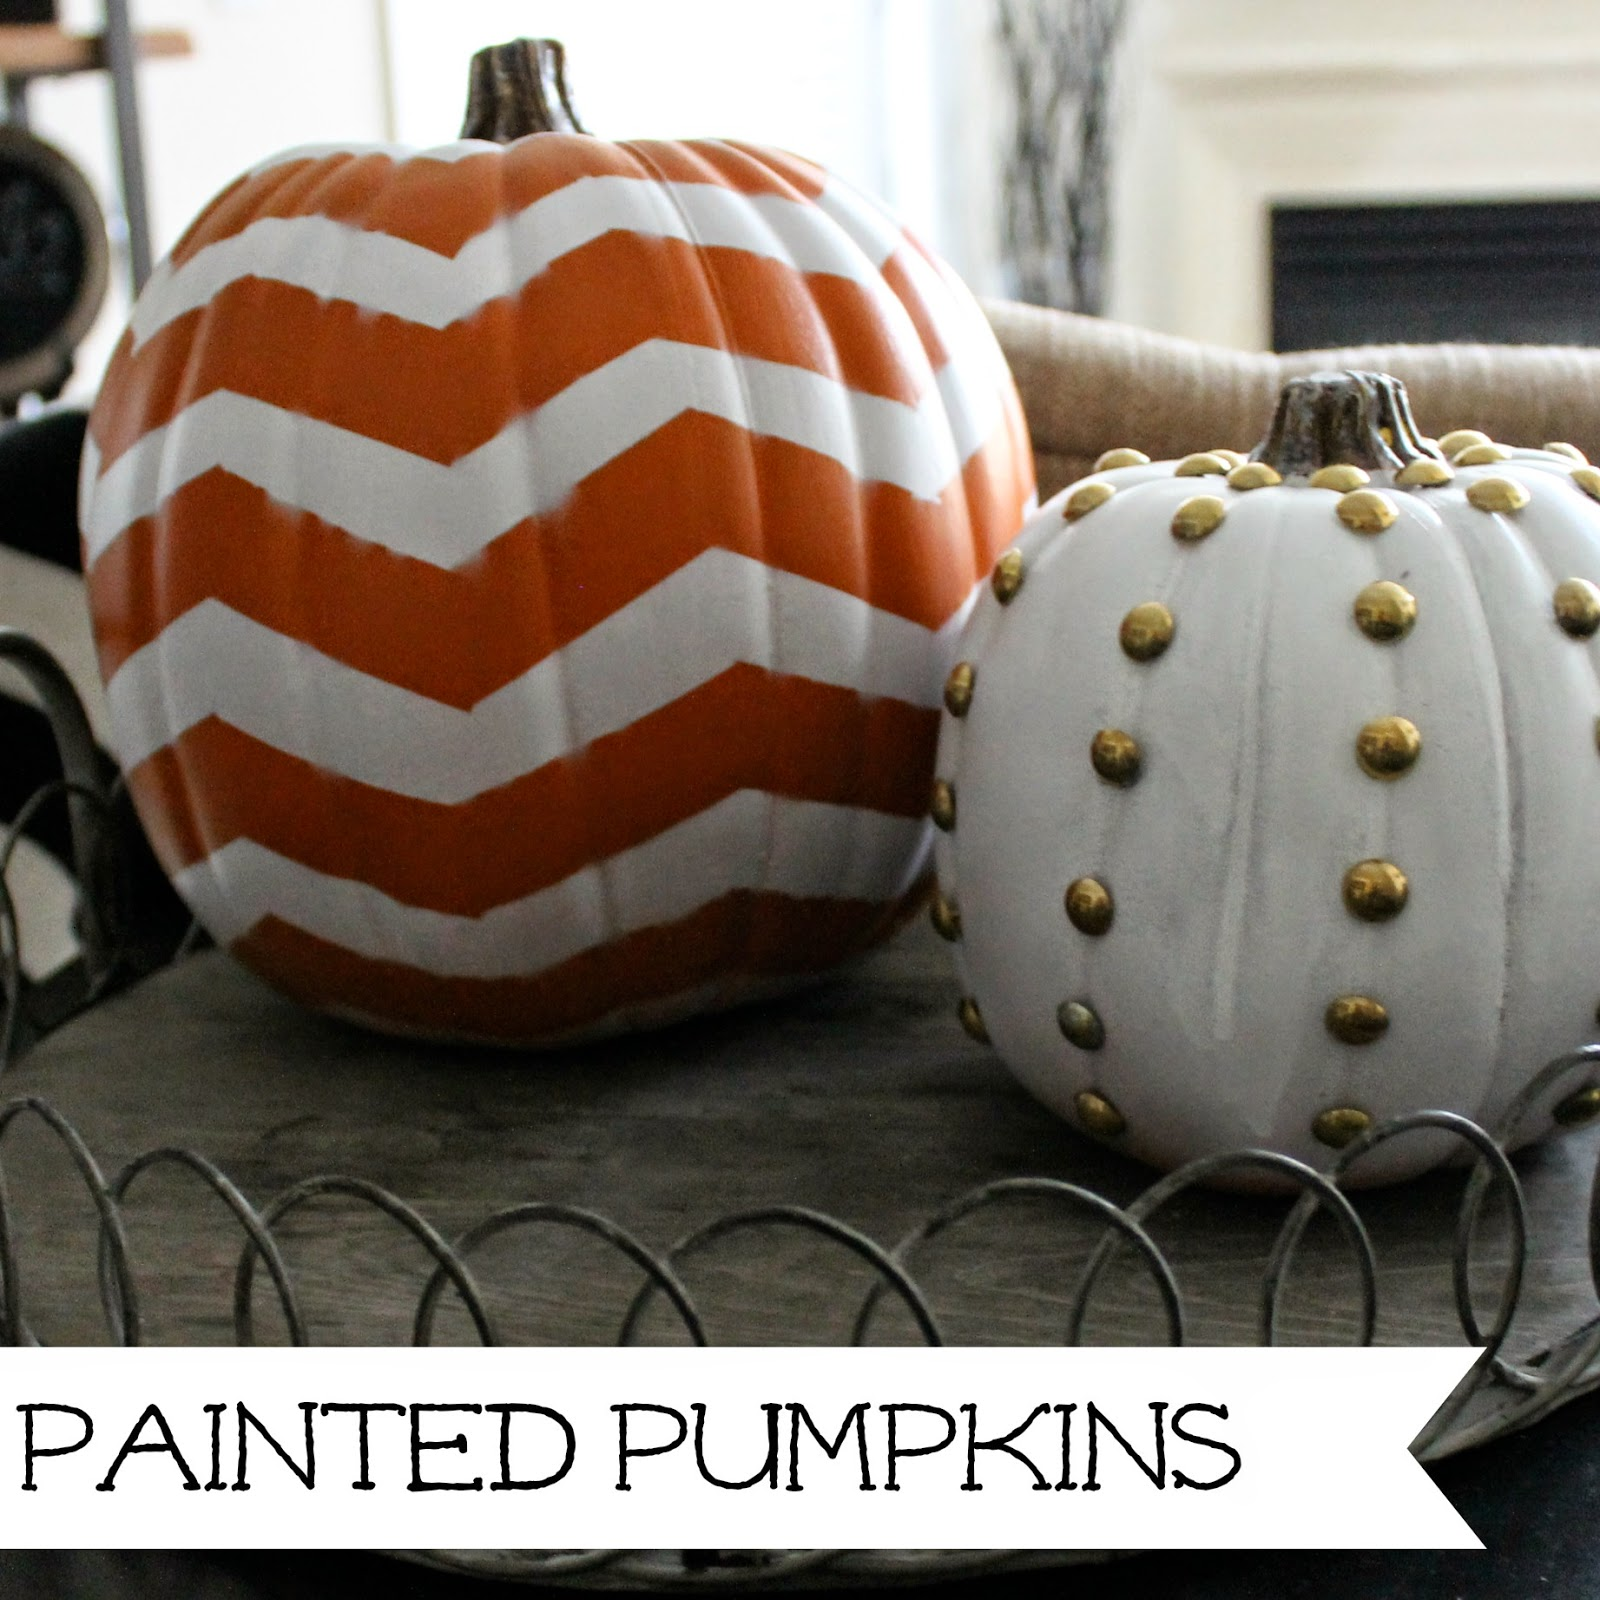 http://wonderfullymadebyleslie.blogspot.com/2013/10/painted-pumpkins.html